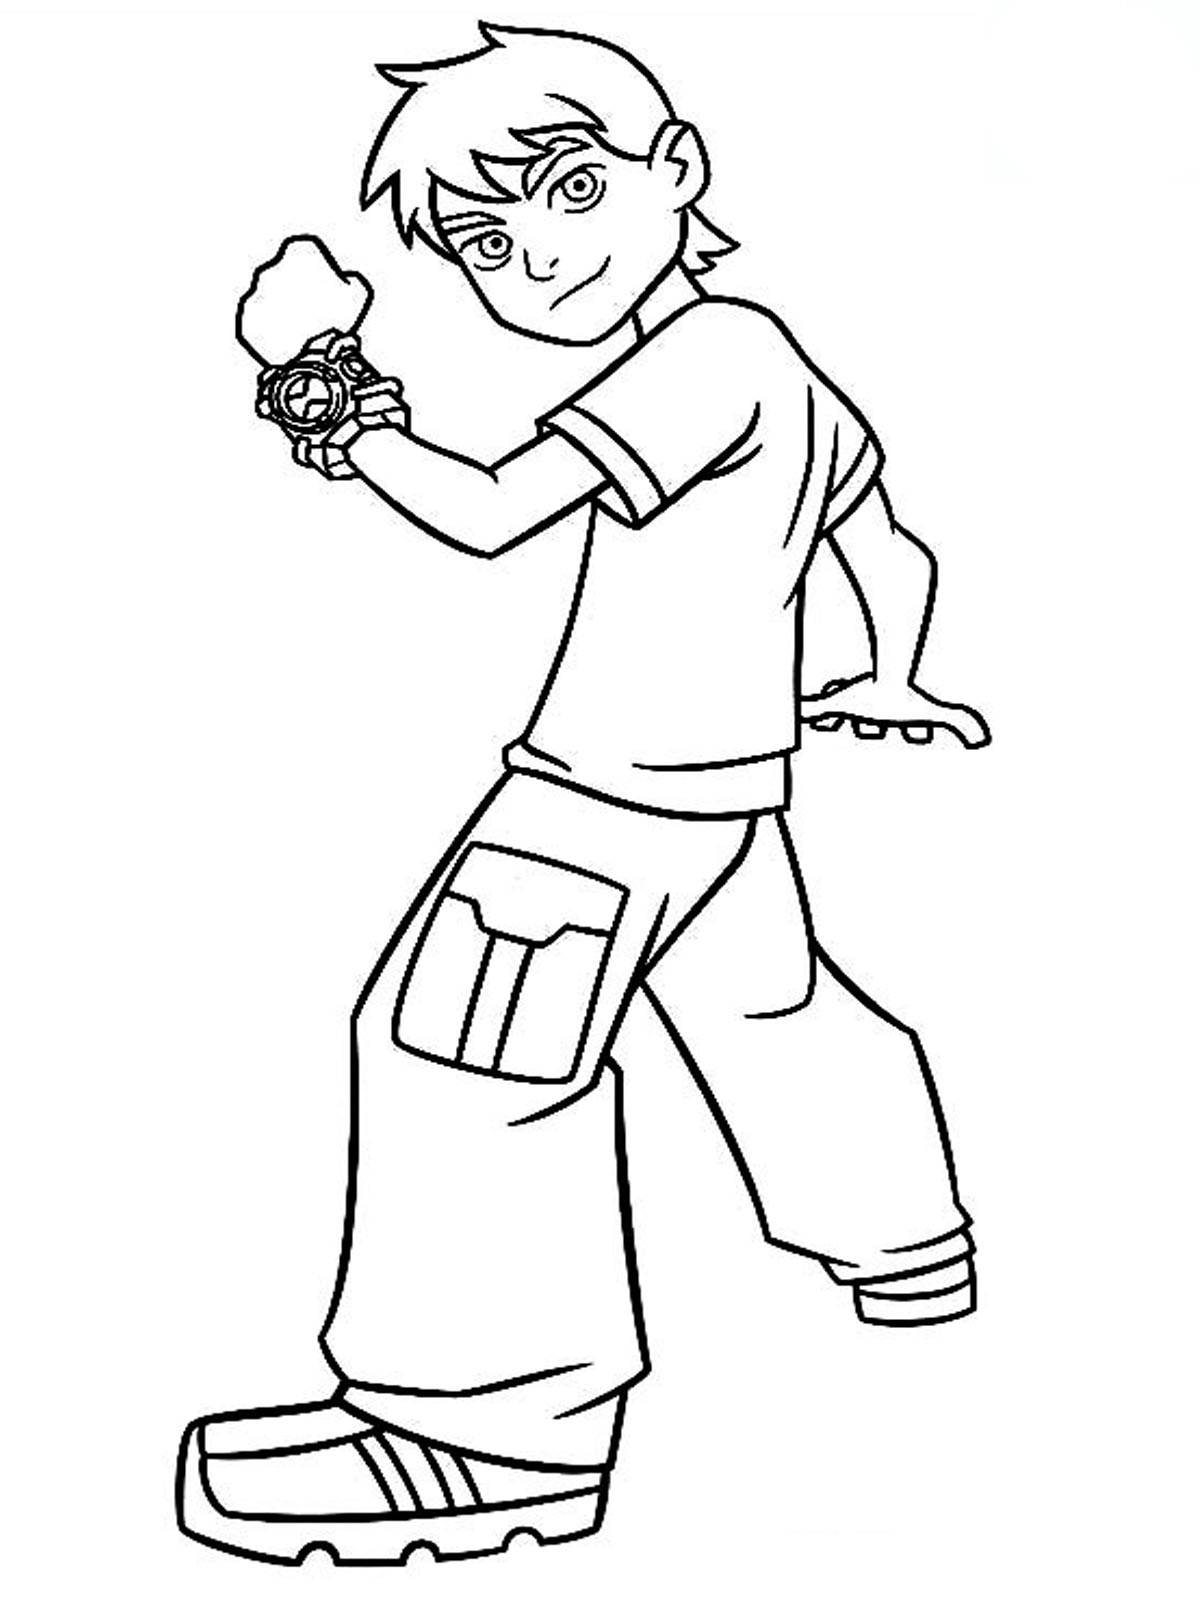 coloring pages ben 10 - photo#22